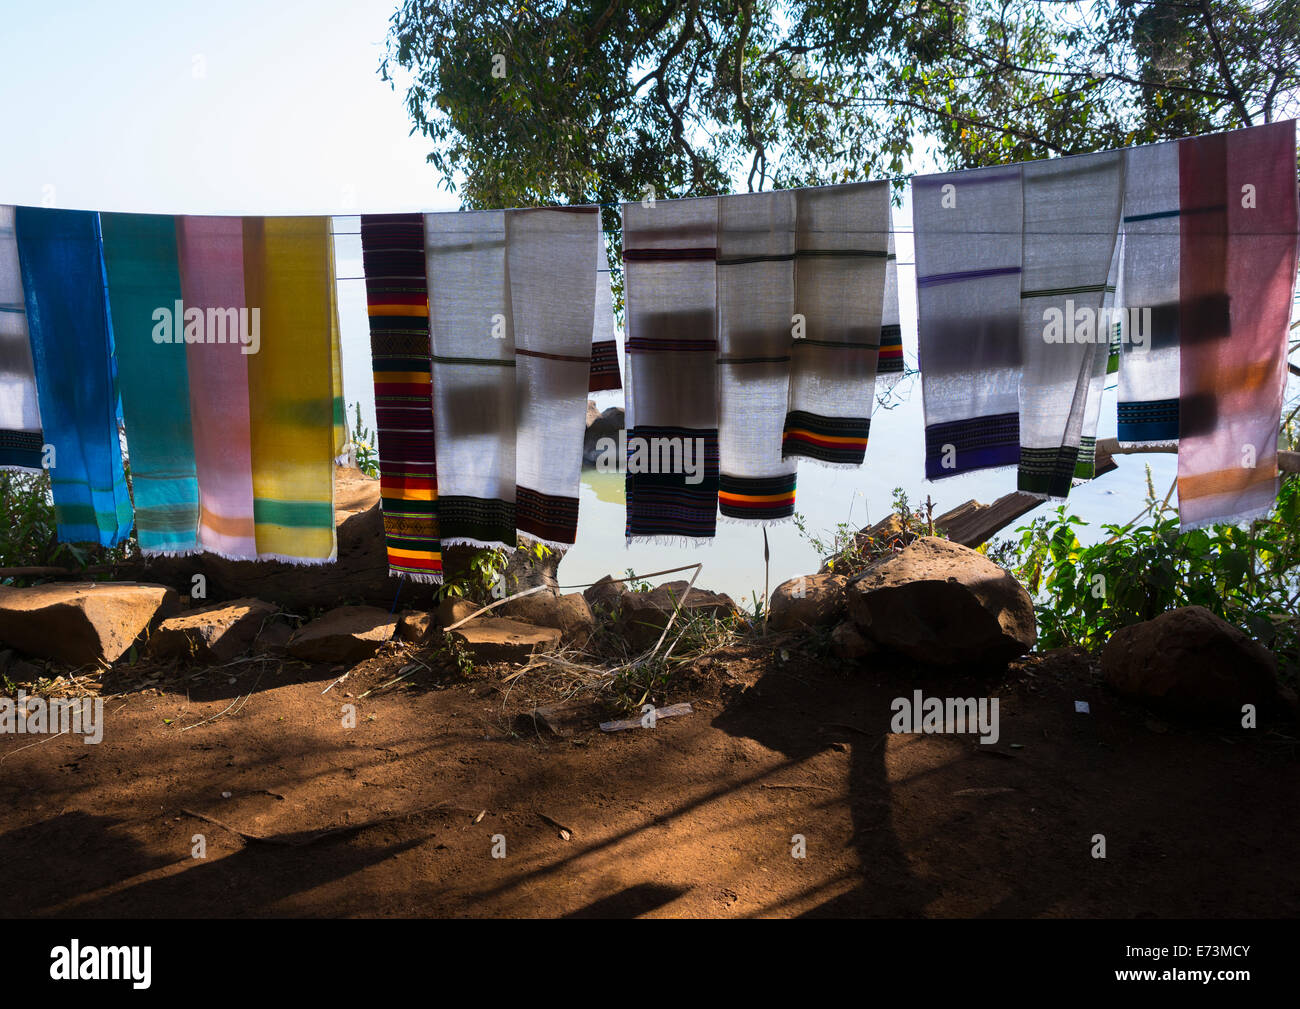 Traditional Shawls For Sale In A Shop, Bahir Dar, Ethiopia - Stock Image